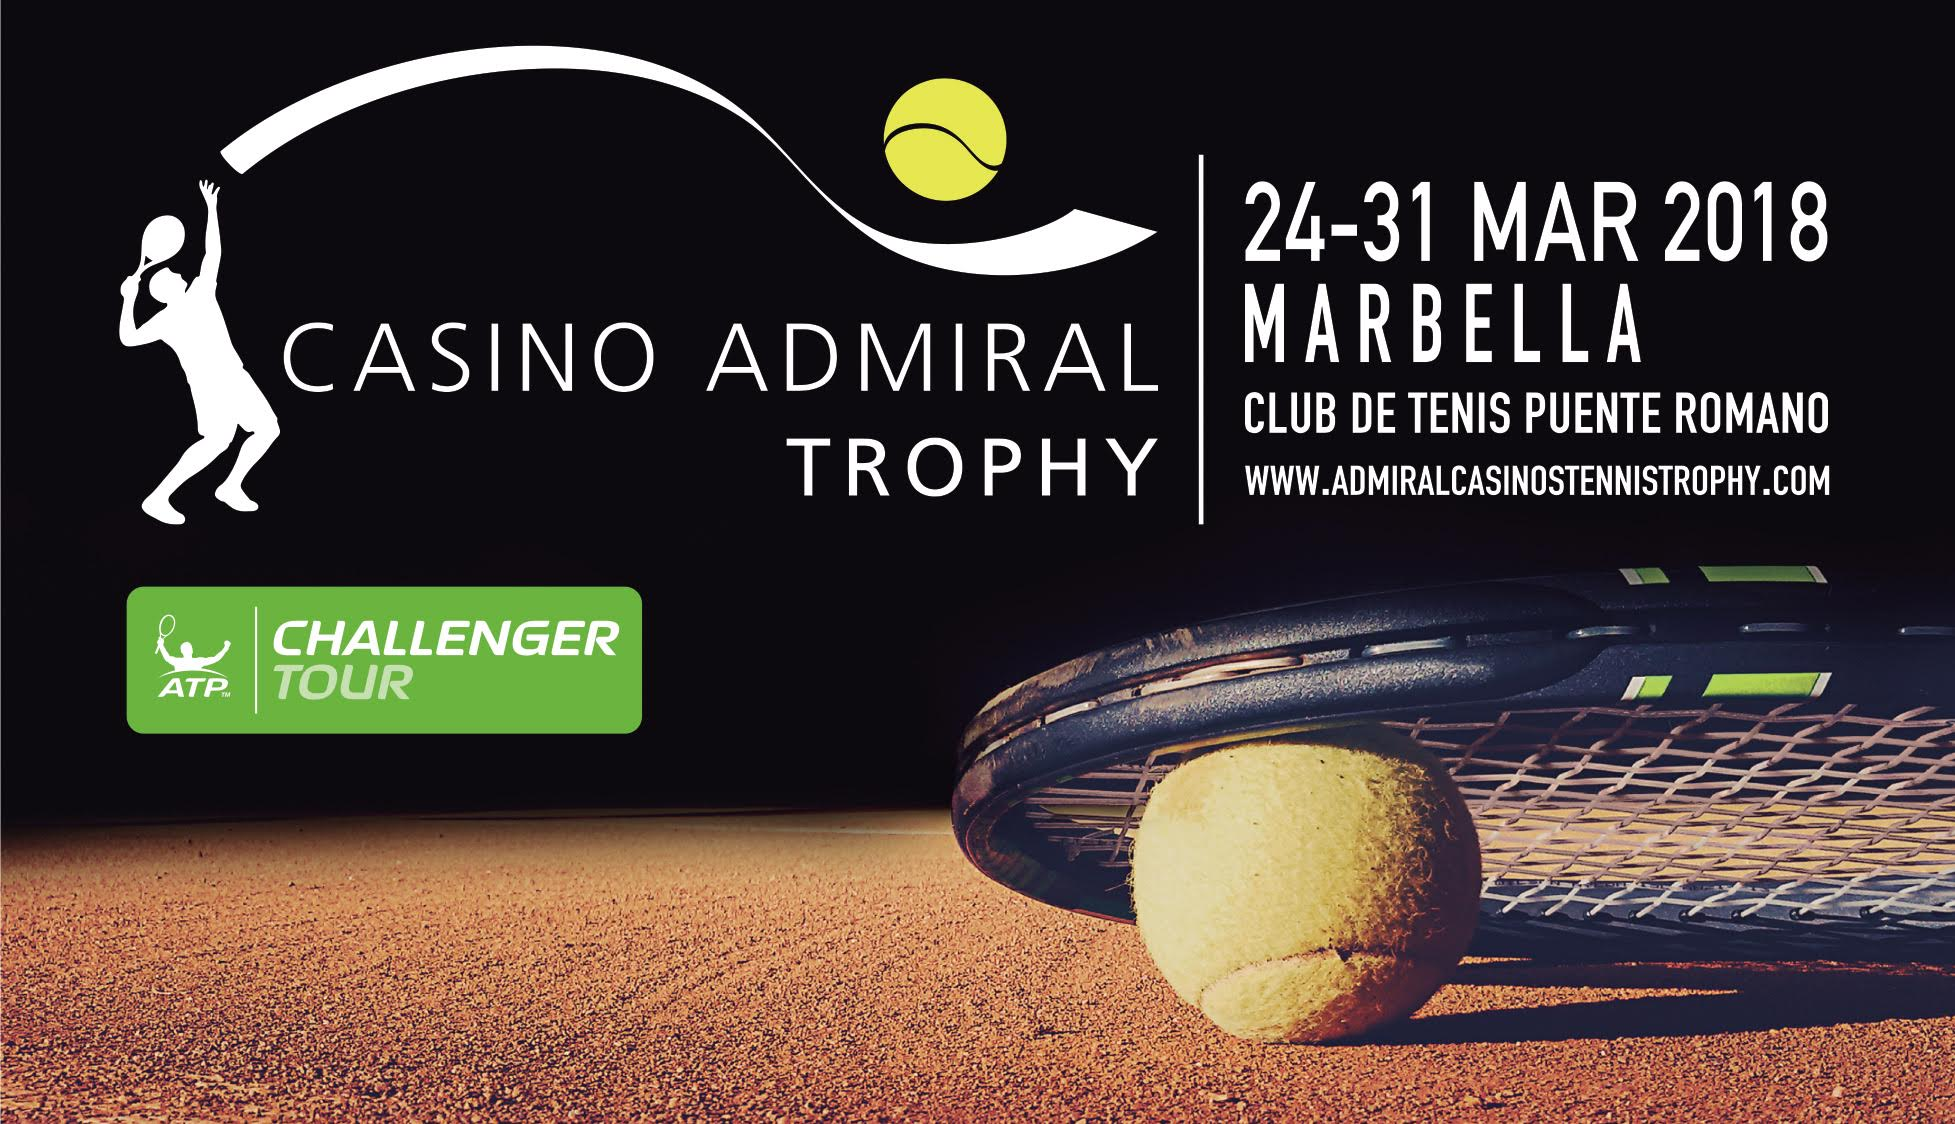 Marbella launches the european circuit tournament of the ATP Challenger